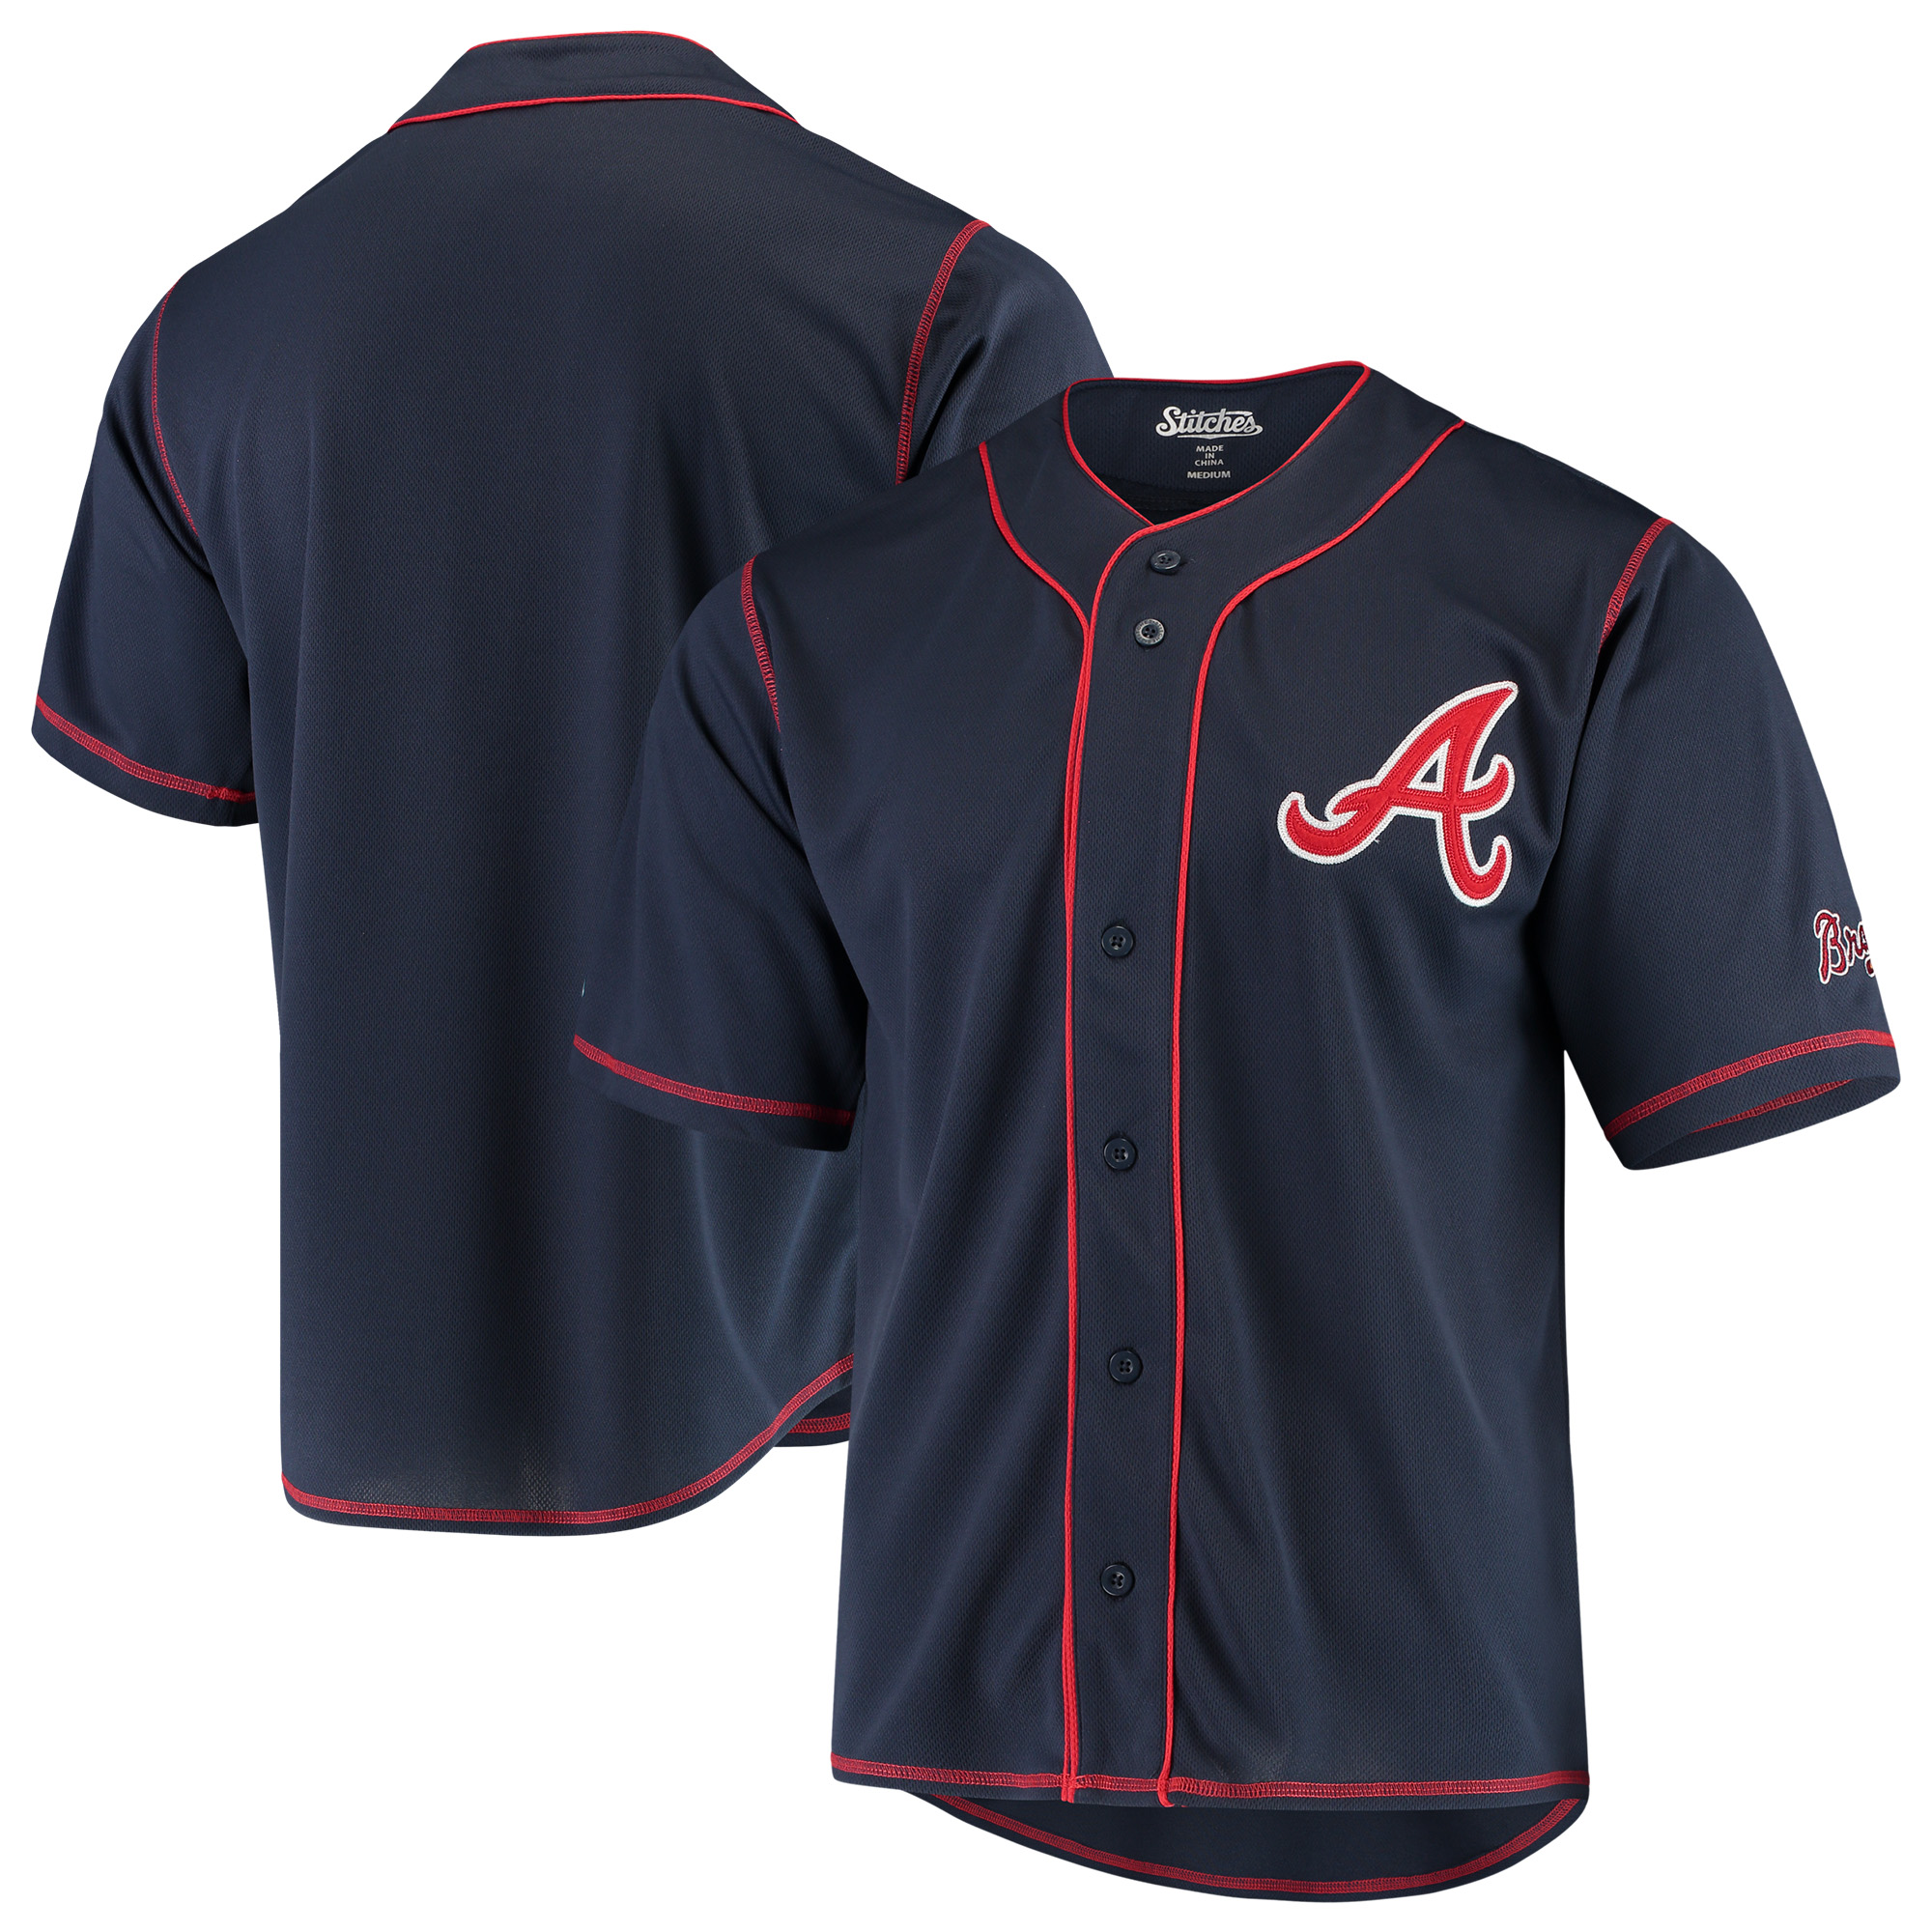 Atlanta Braves Stitches Team Color Button-Down Jersey - Navy/Red